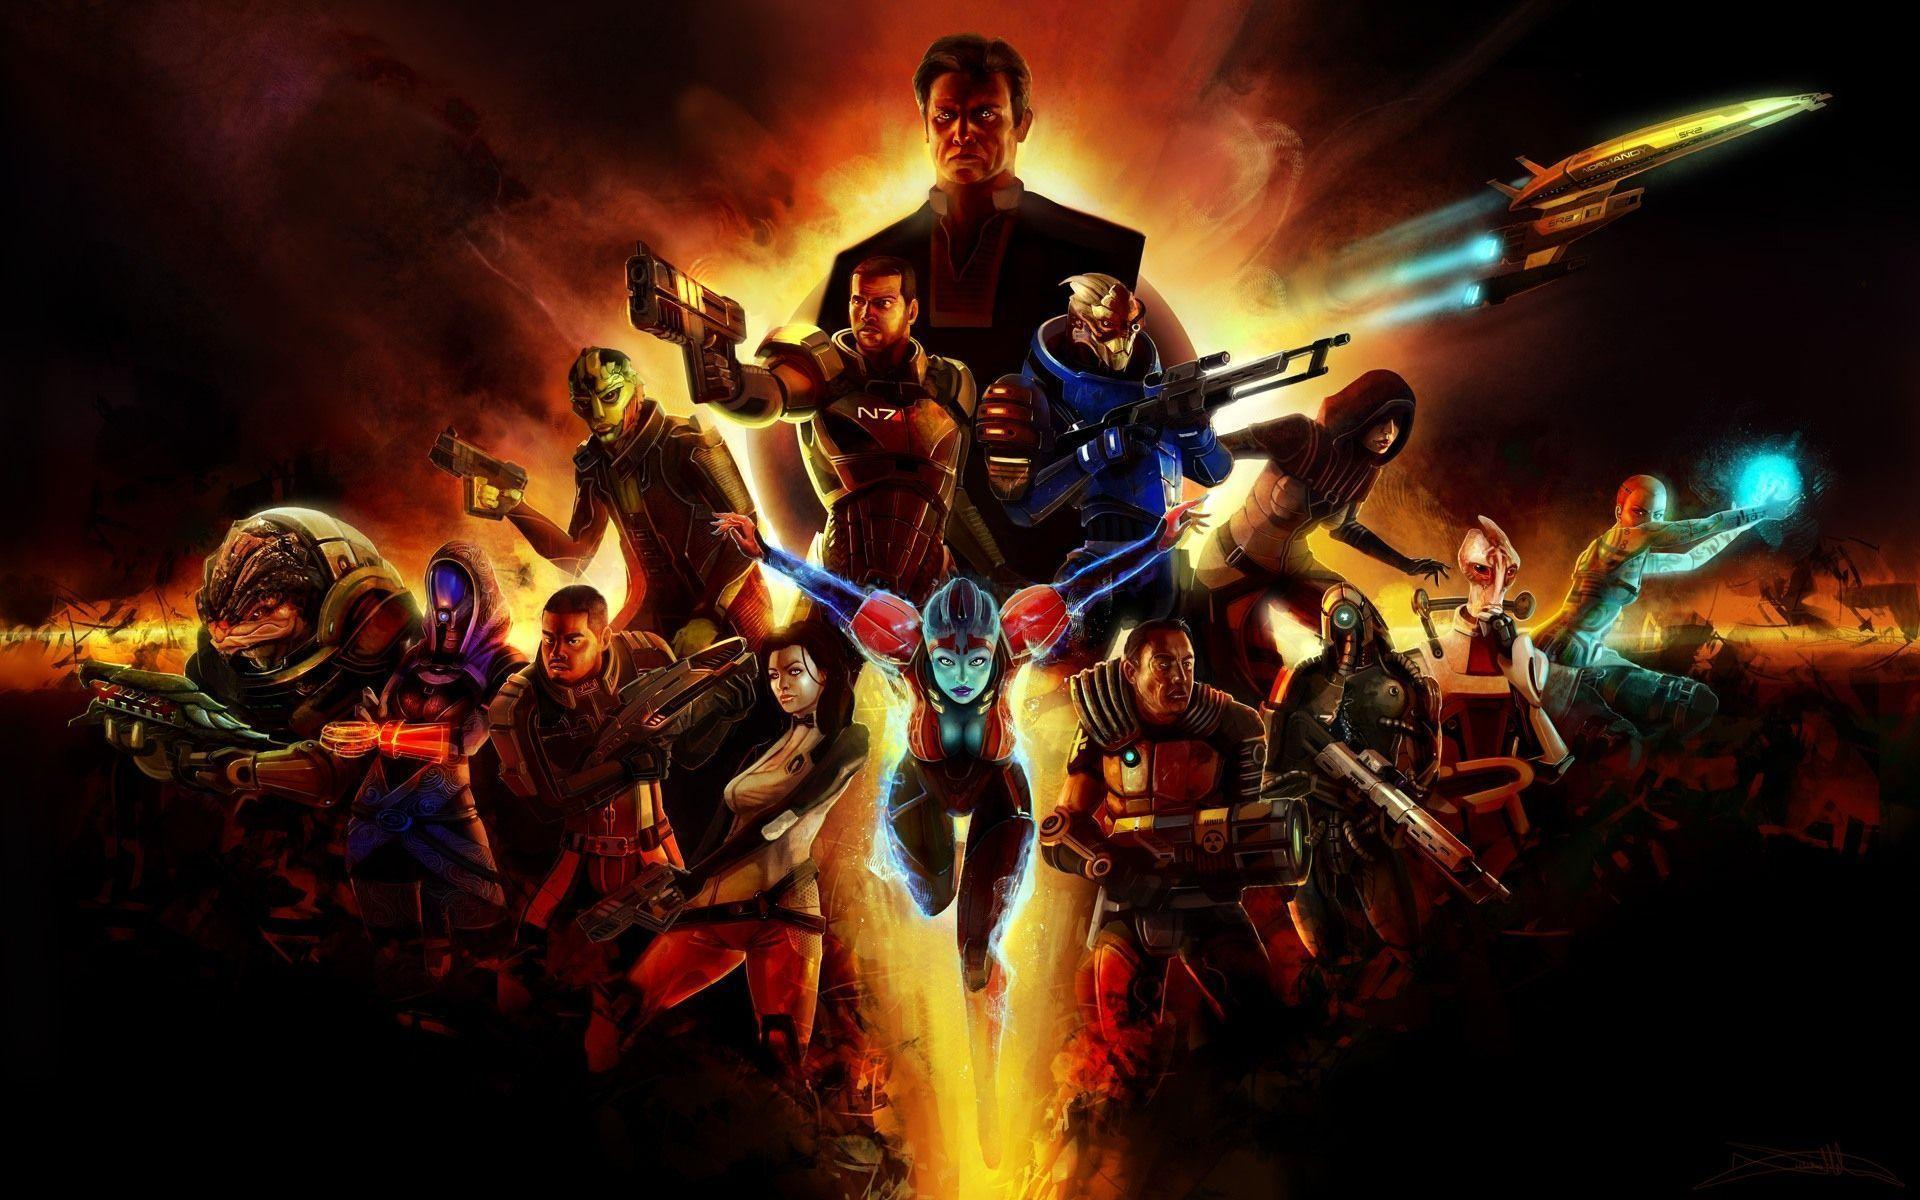 Mass Effect 2 Wallpapers For Android Wallpapers